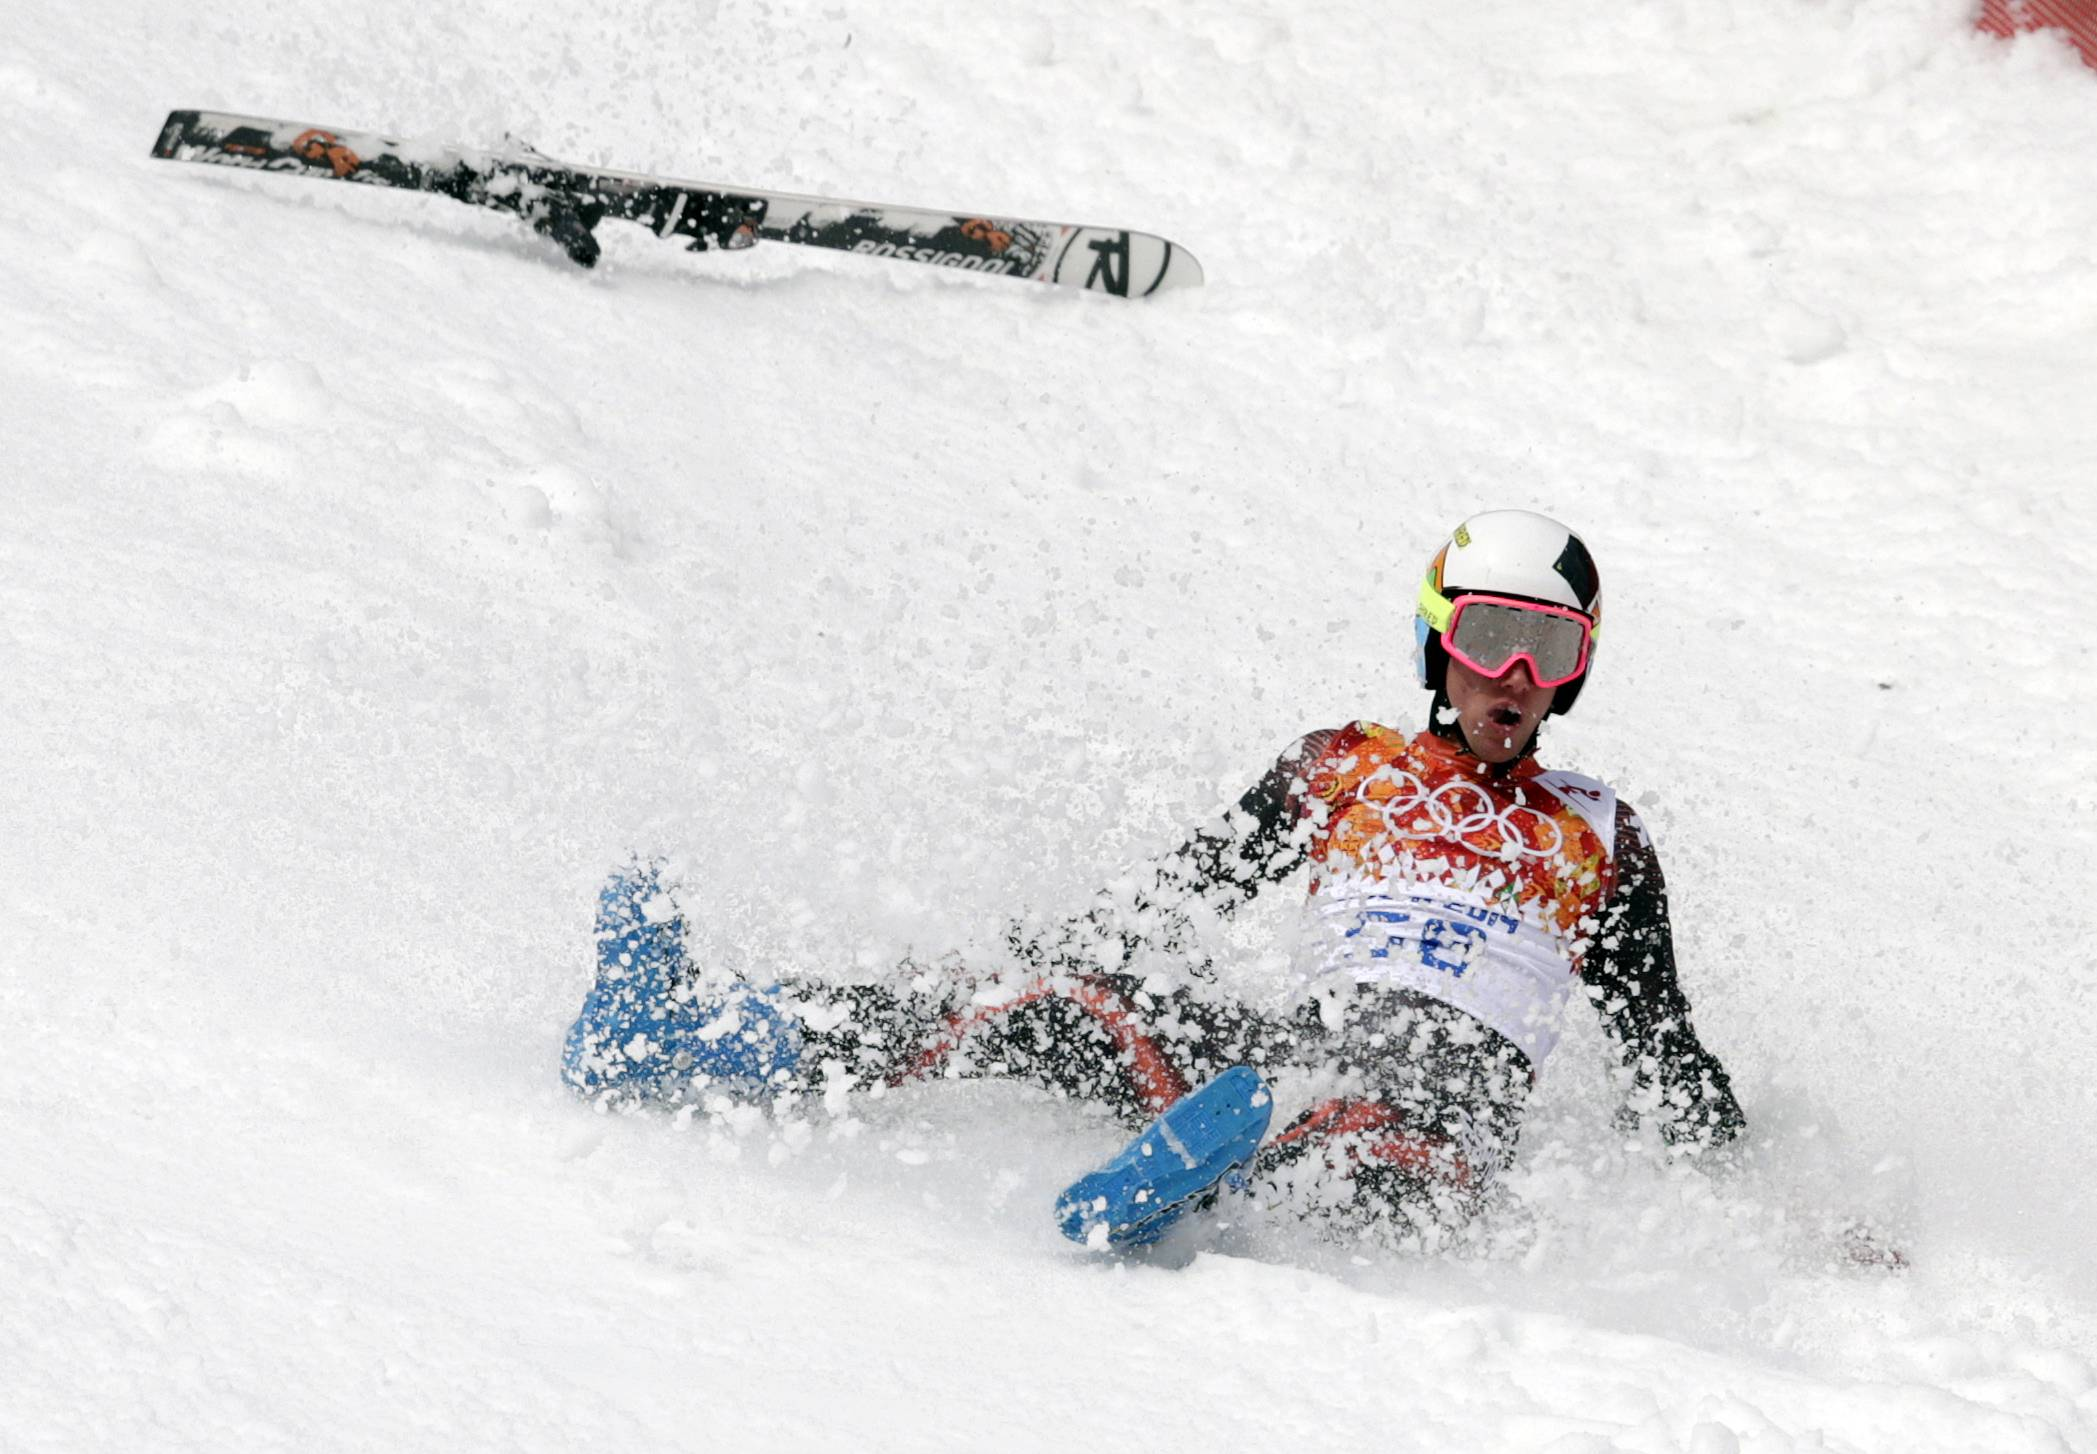 Spain's Alex Puente Tasias slides down the course after crashing Wednesday during the first run of the men's giant slalom at the Sochi 2014 Winter Olympics in Krasnaya Polyana, Russia.